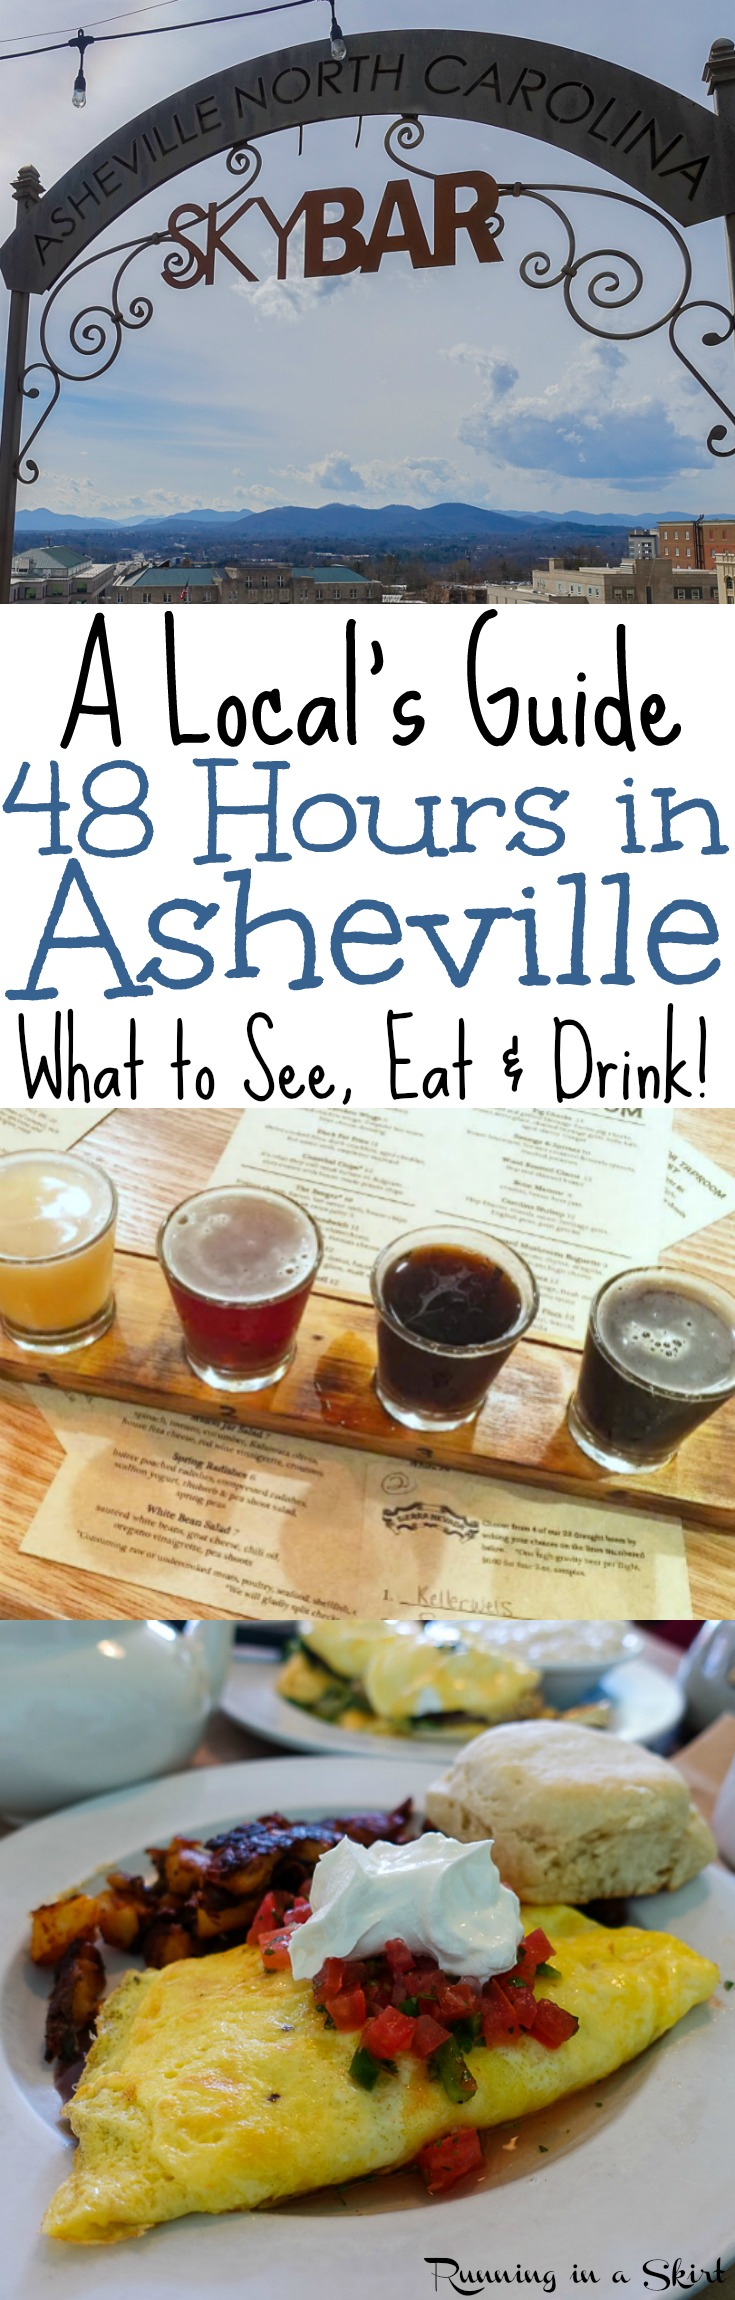 Things to Do In 48 Hours in Asheville, North Carolina - a Local's Travel Guide and complete itinerary including fun downtown restaurants, free hiking, breweries, shopping, coffee and nightlife. Includes what to do to get great eats, visit the Blue Ridge Parkway, Biscuit Head and Tupelo Honey Cafe! / Running in a Skirt via @juliewunder